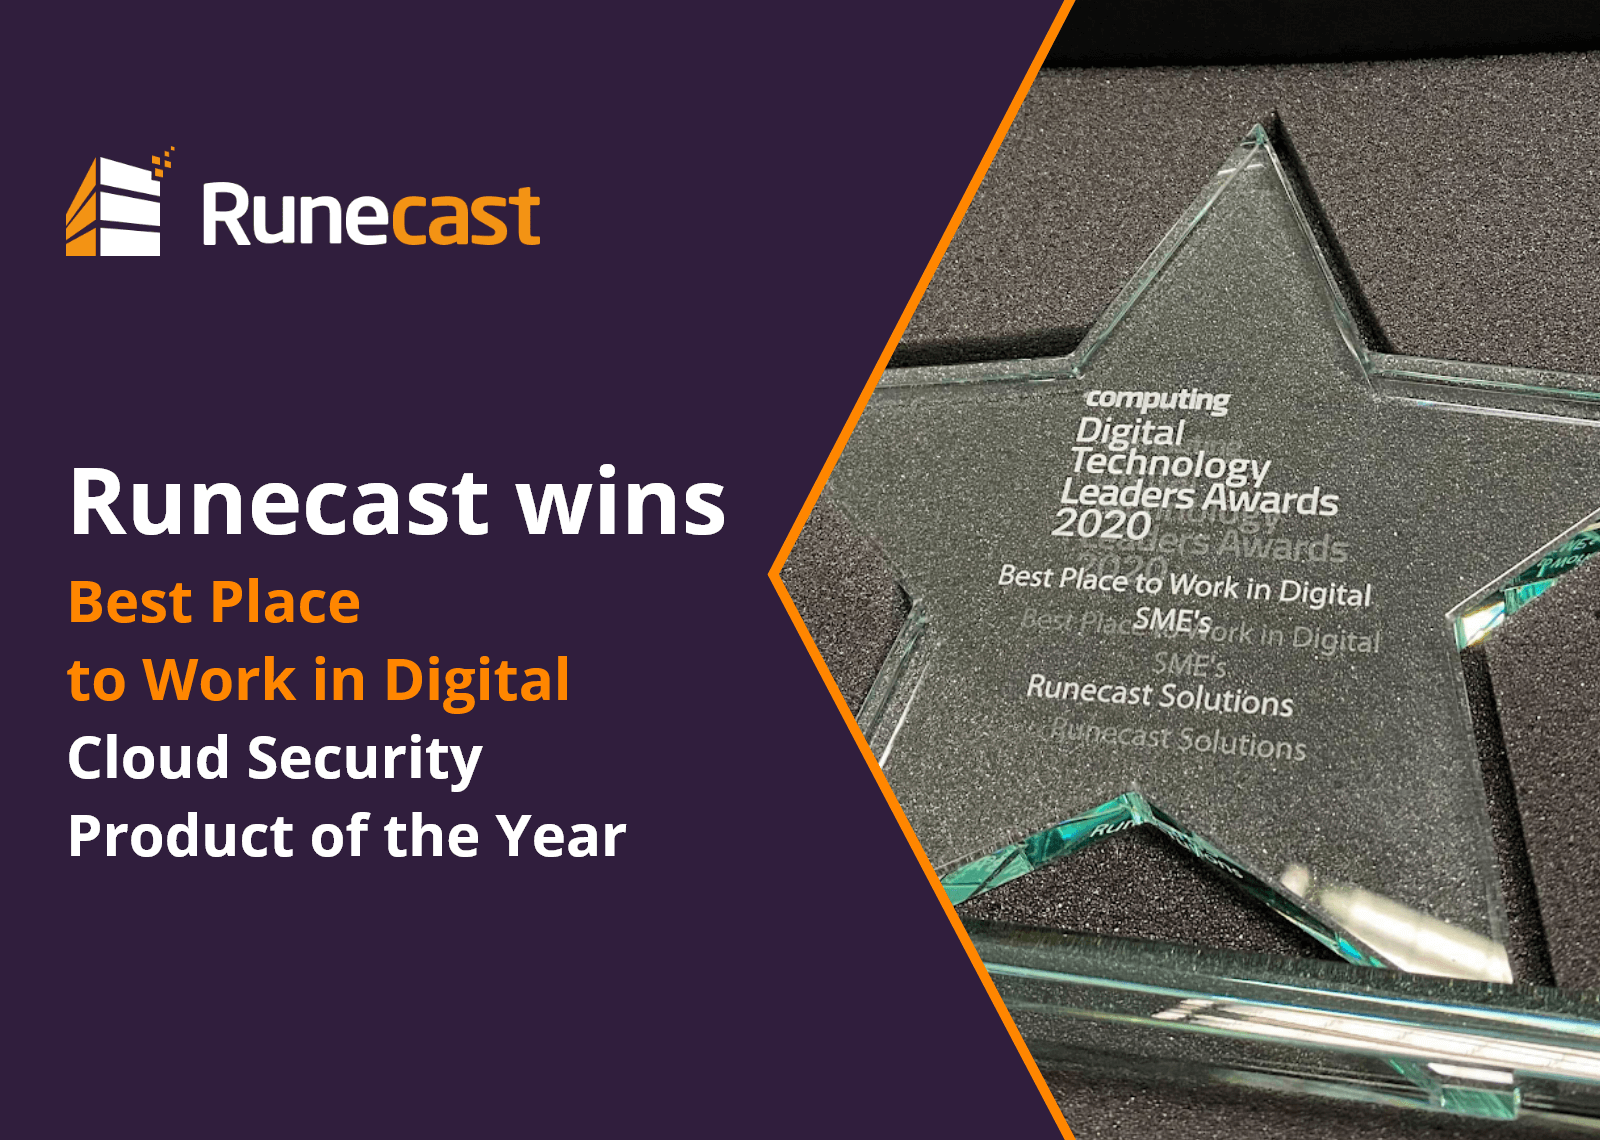 Runecest is Best Place to Work in Digital 2020